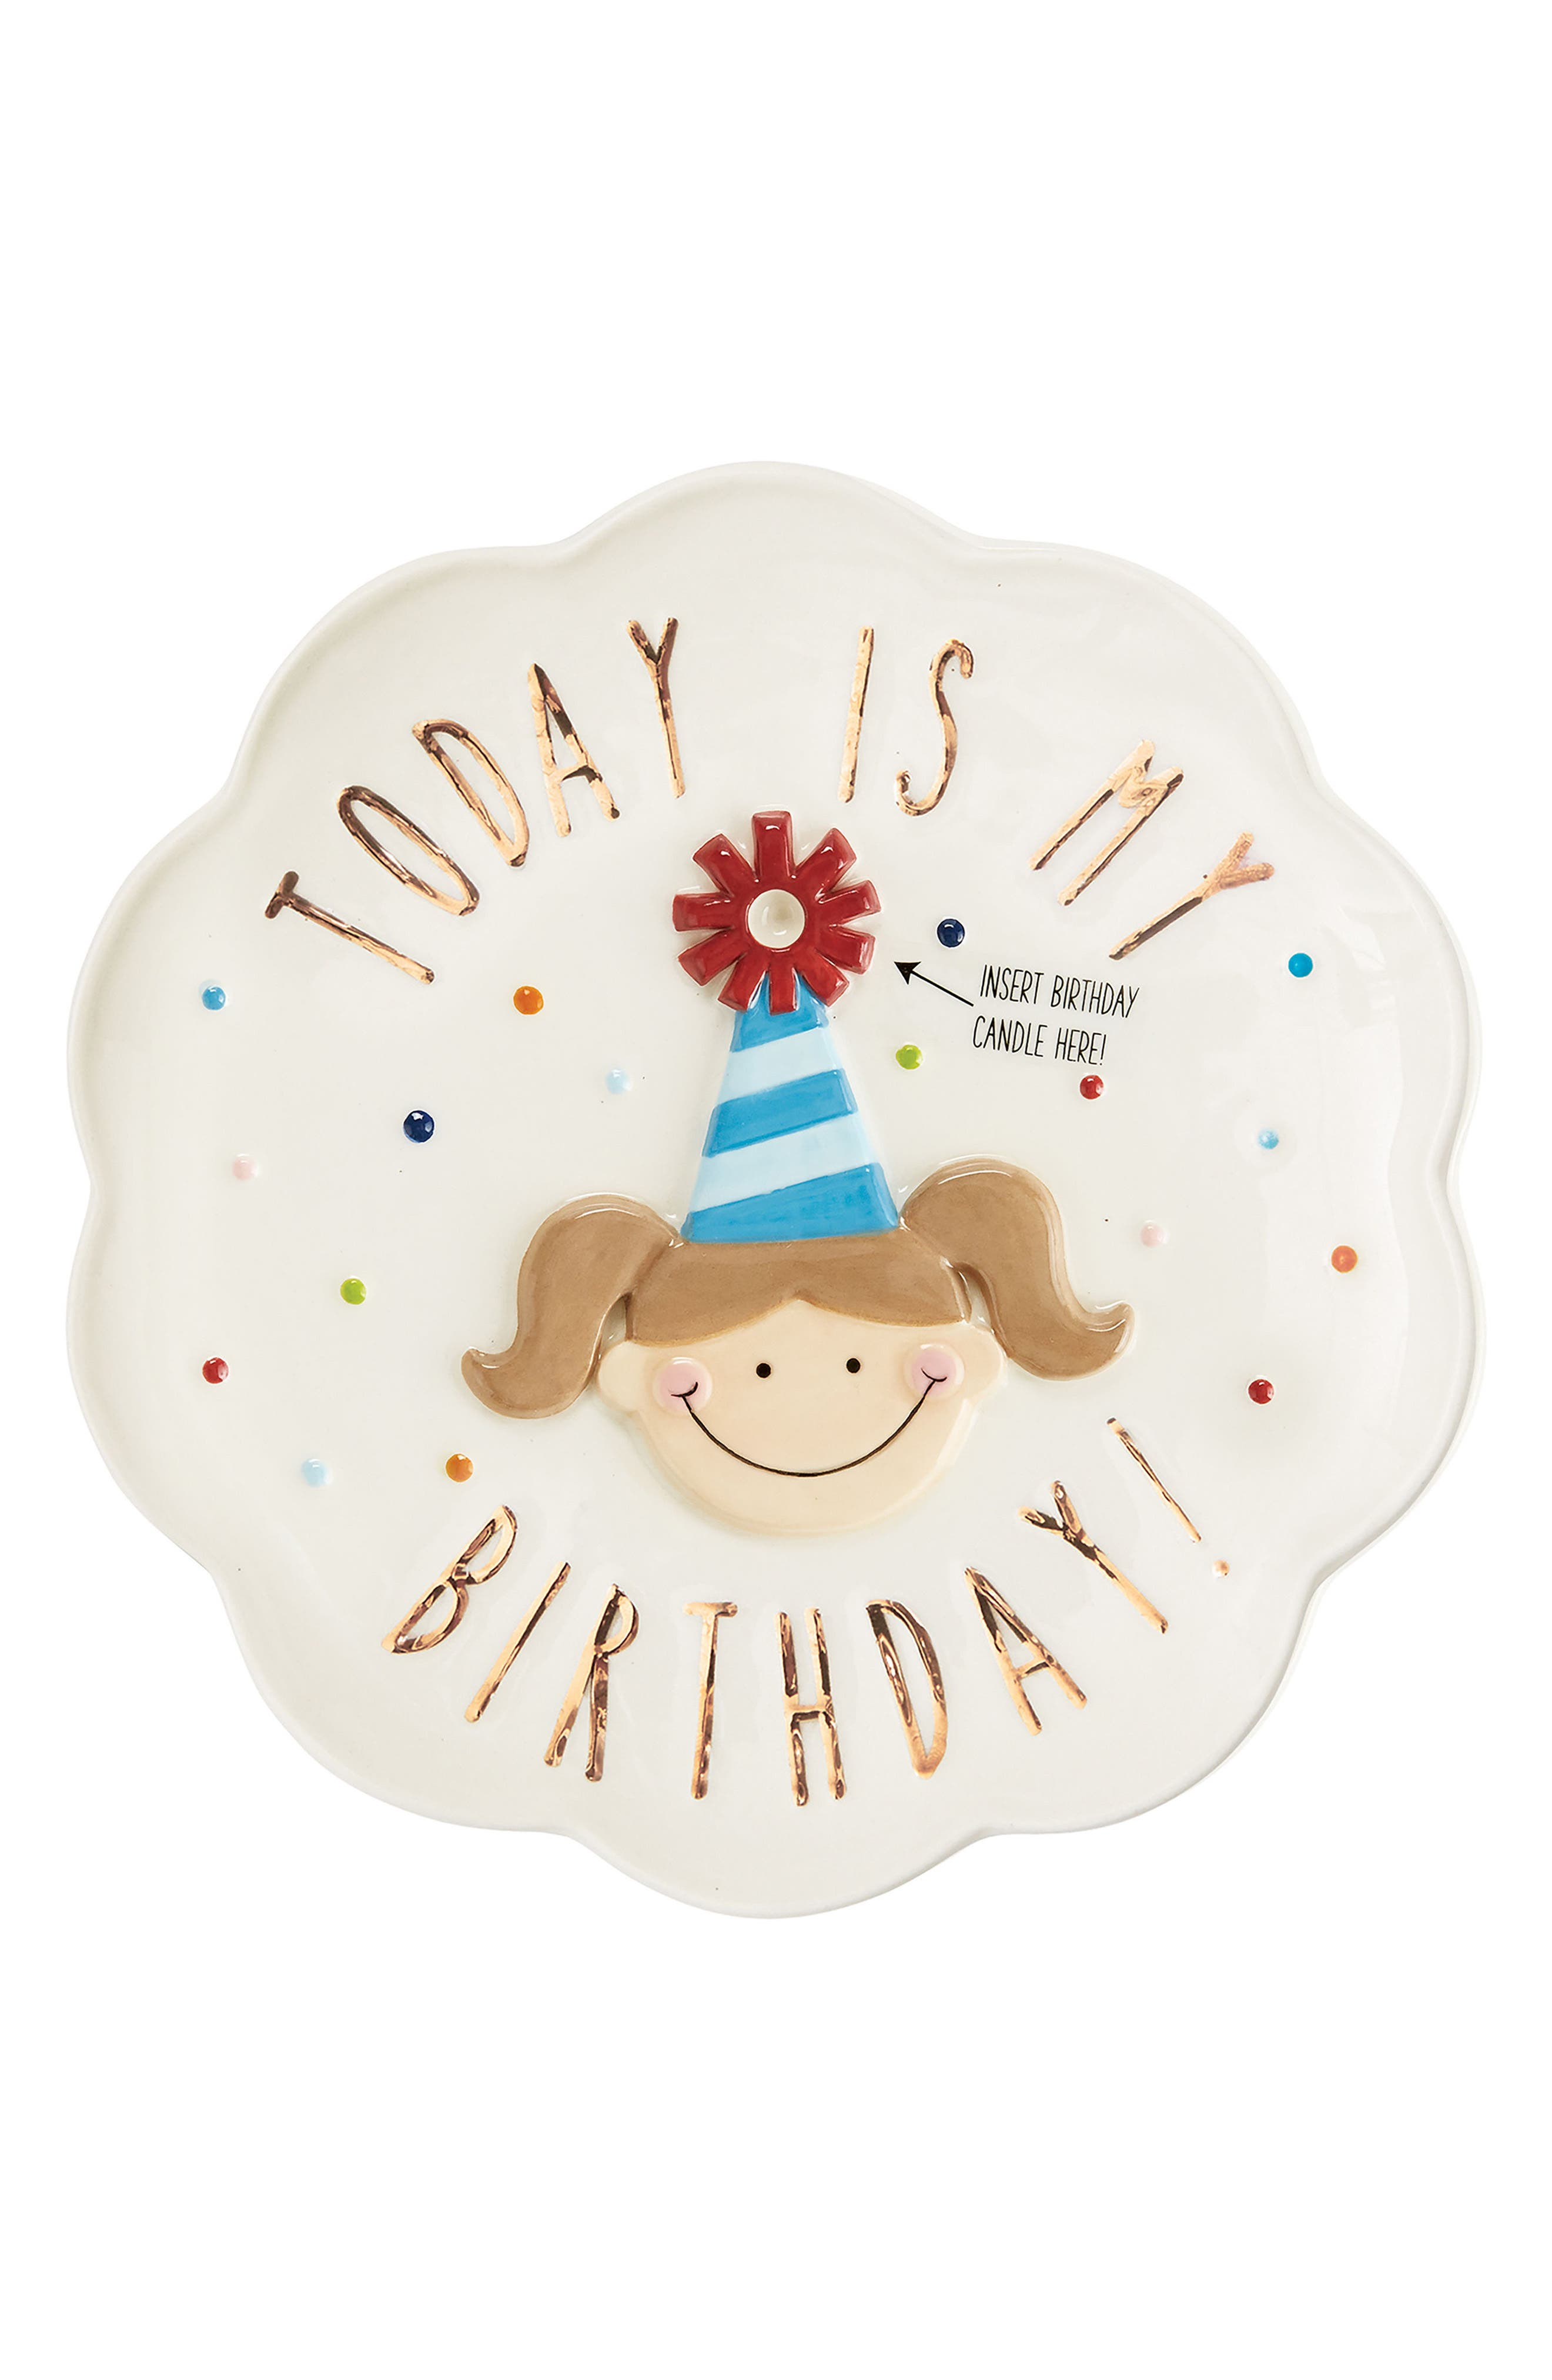 Birthday Girl Candle Plate,                         Main,                         color, White